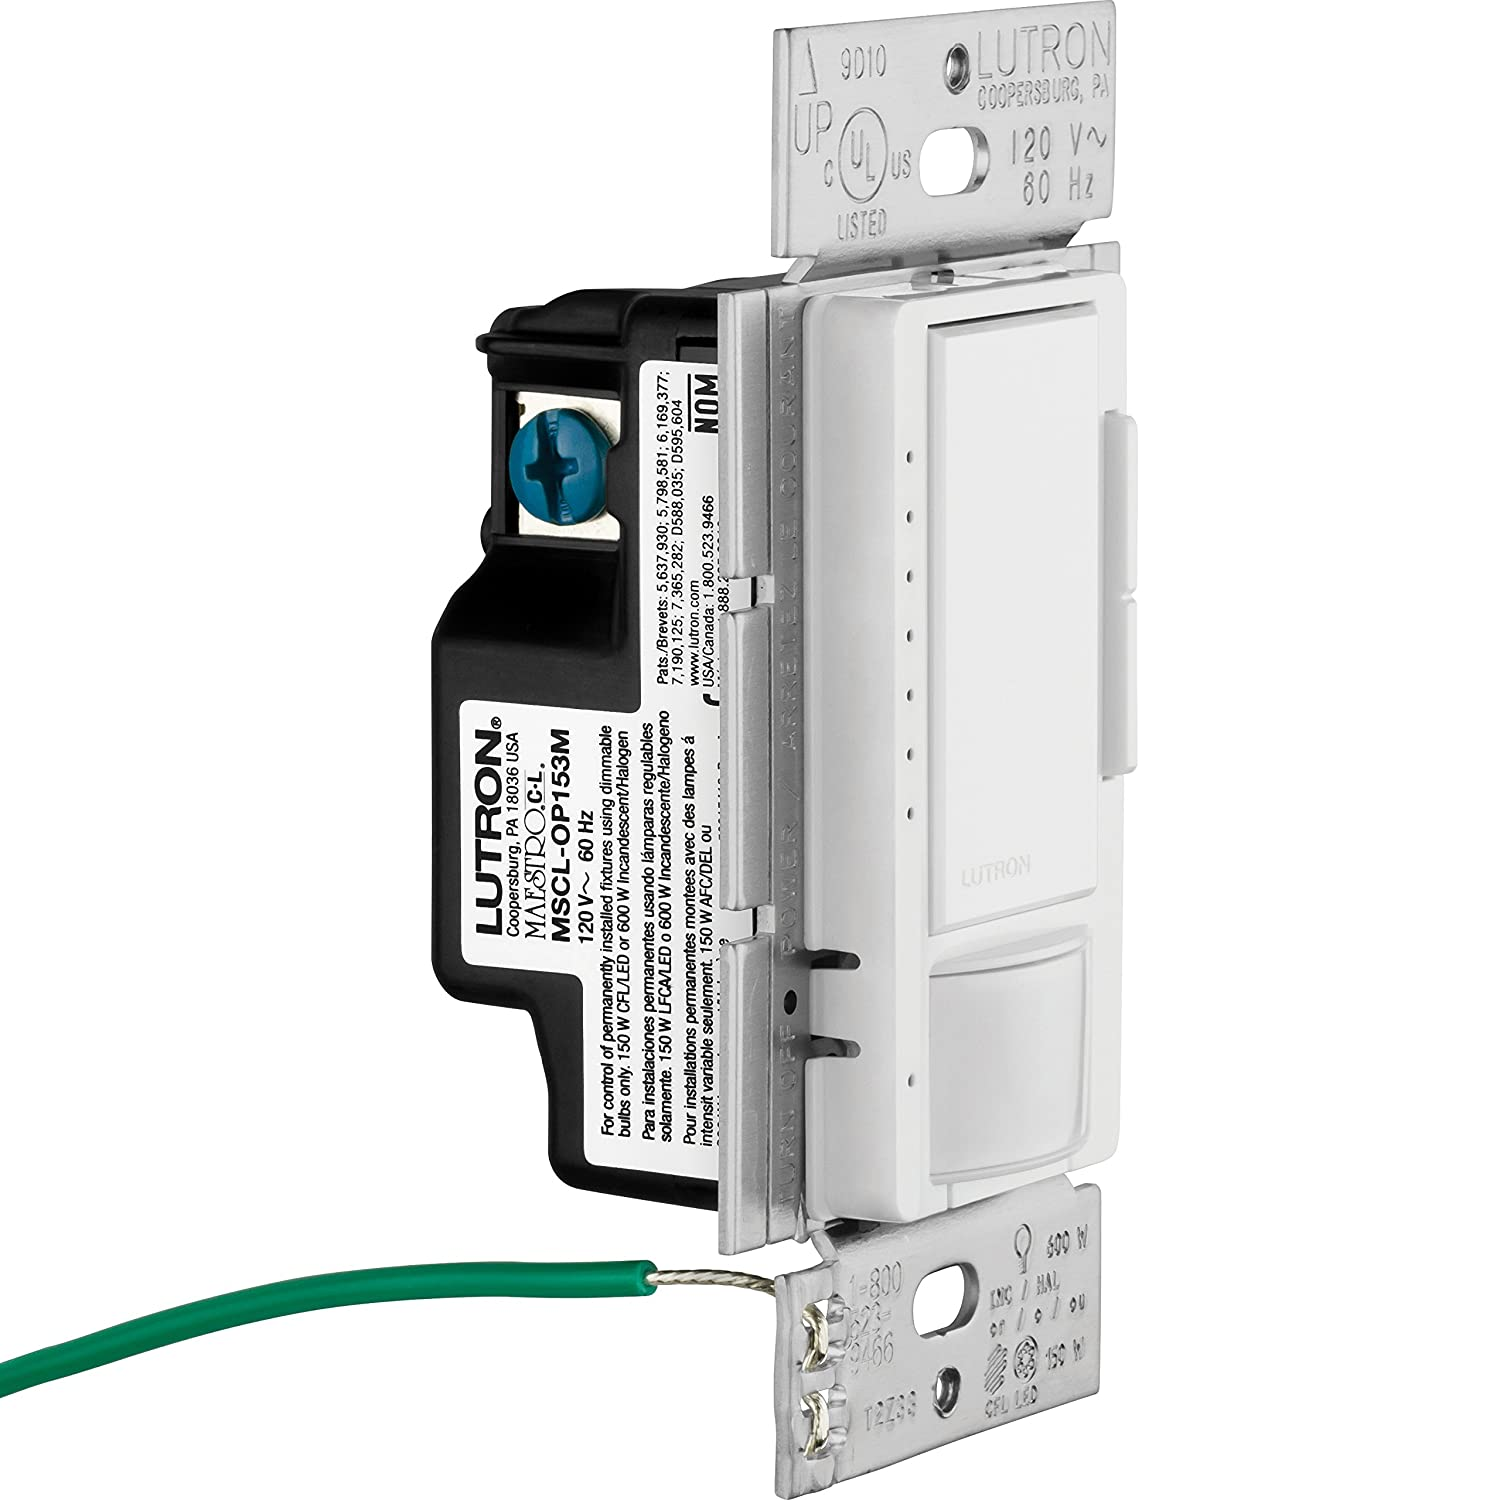 81Np1x7uO2L._SL1500_ lutron maestro c l dimmer and motion sensor, single pole and multi  at crackthecode.co